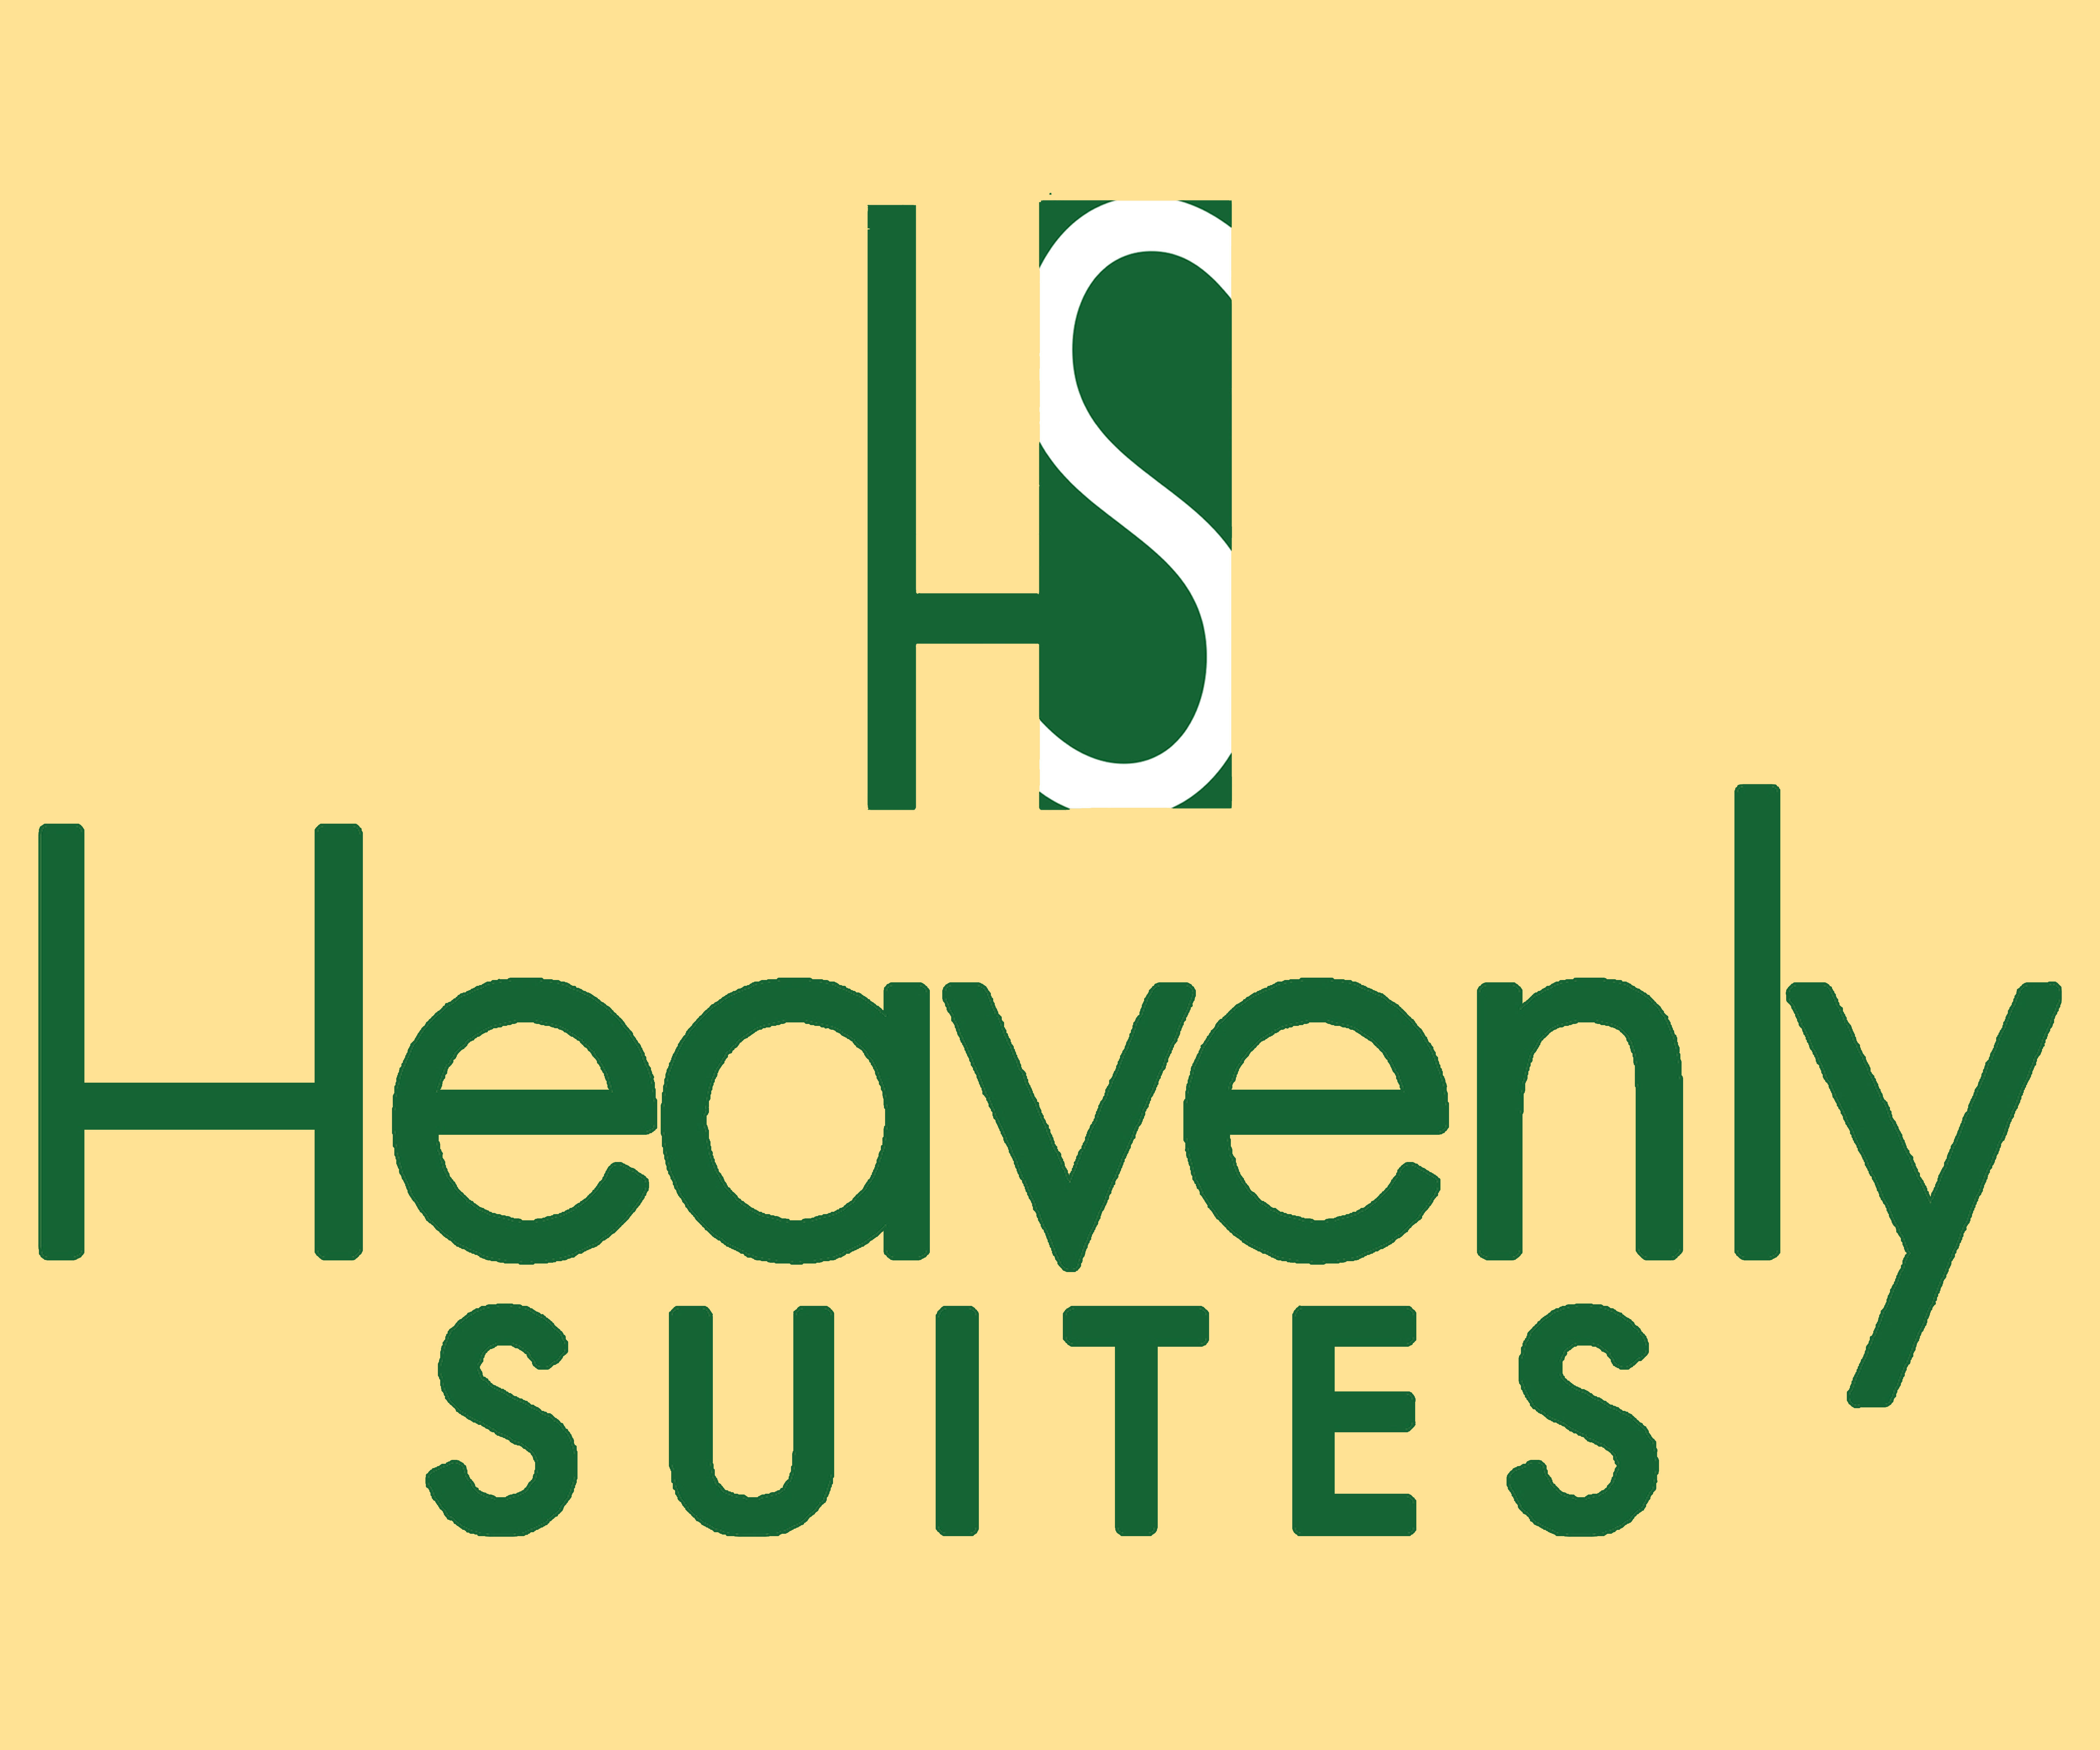 Heavenly Suites